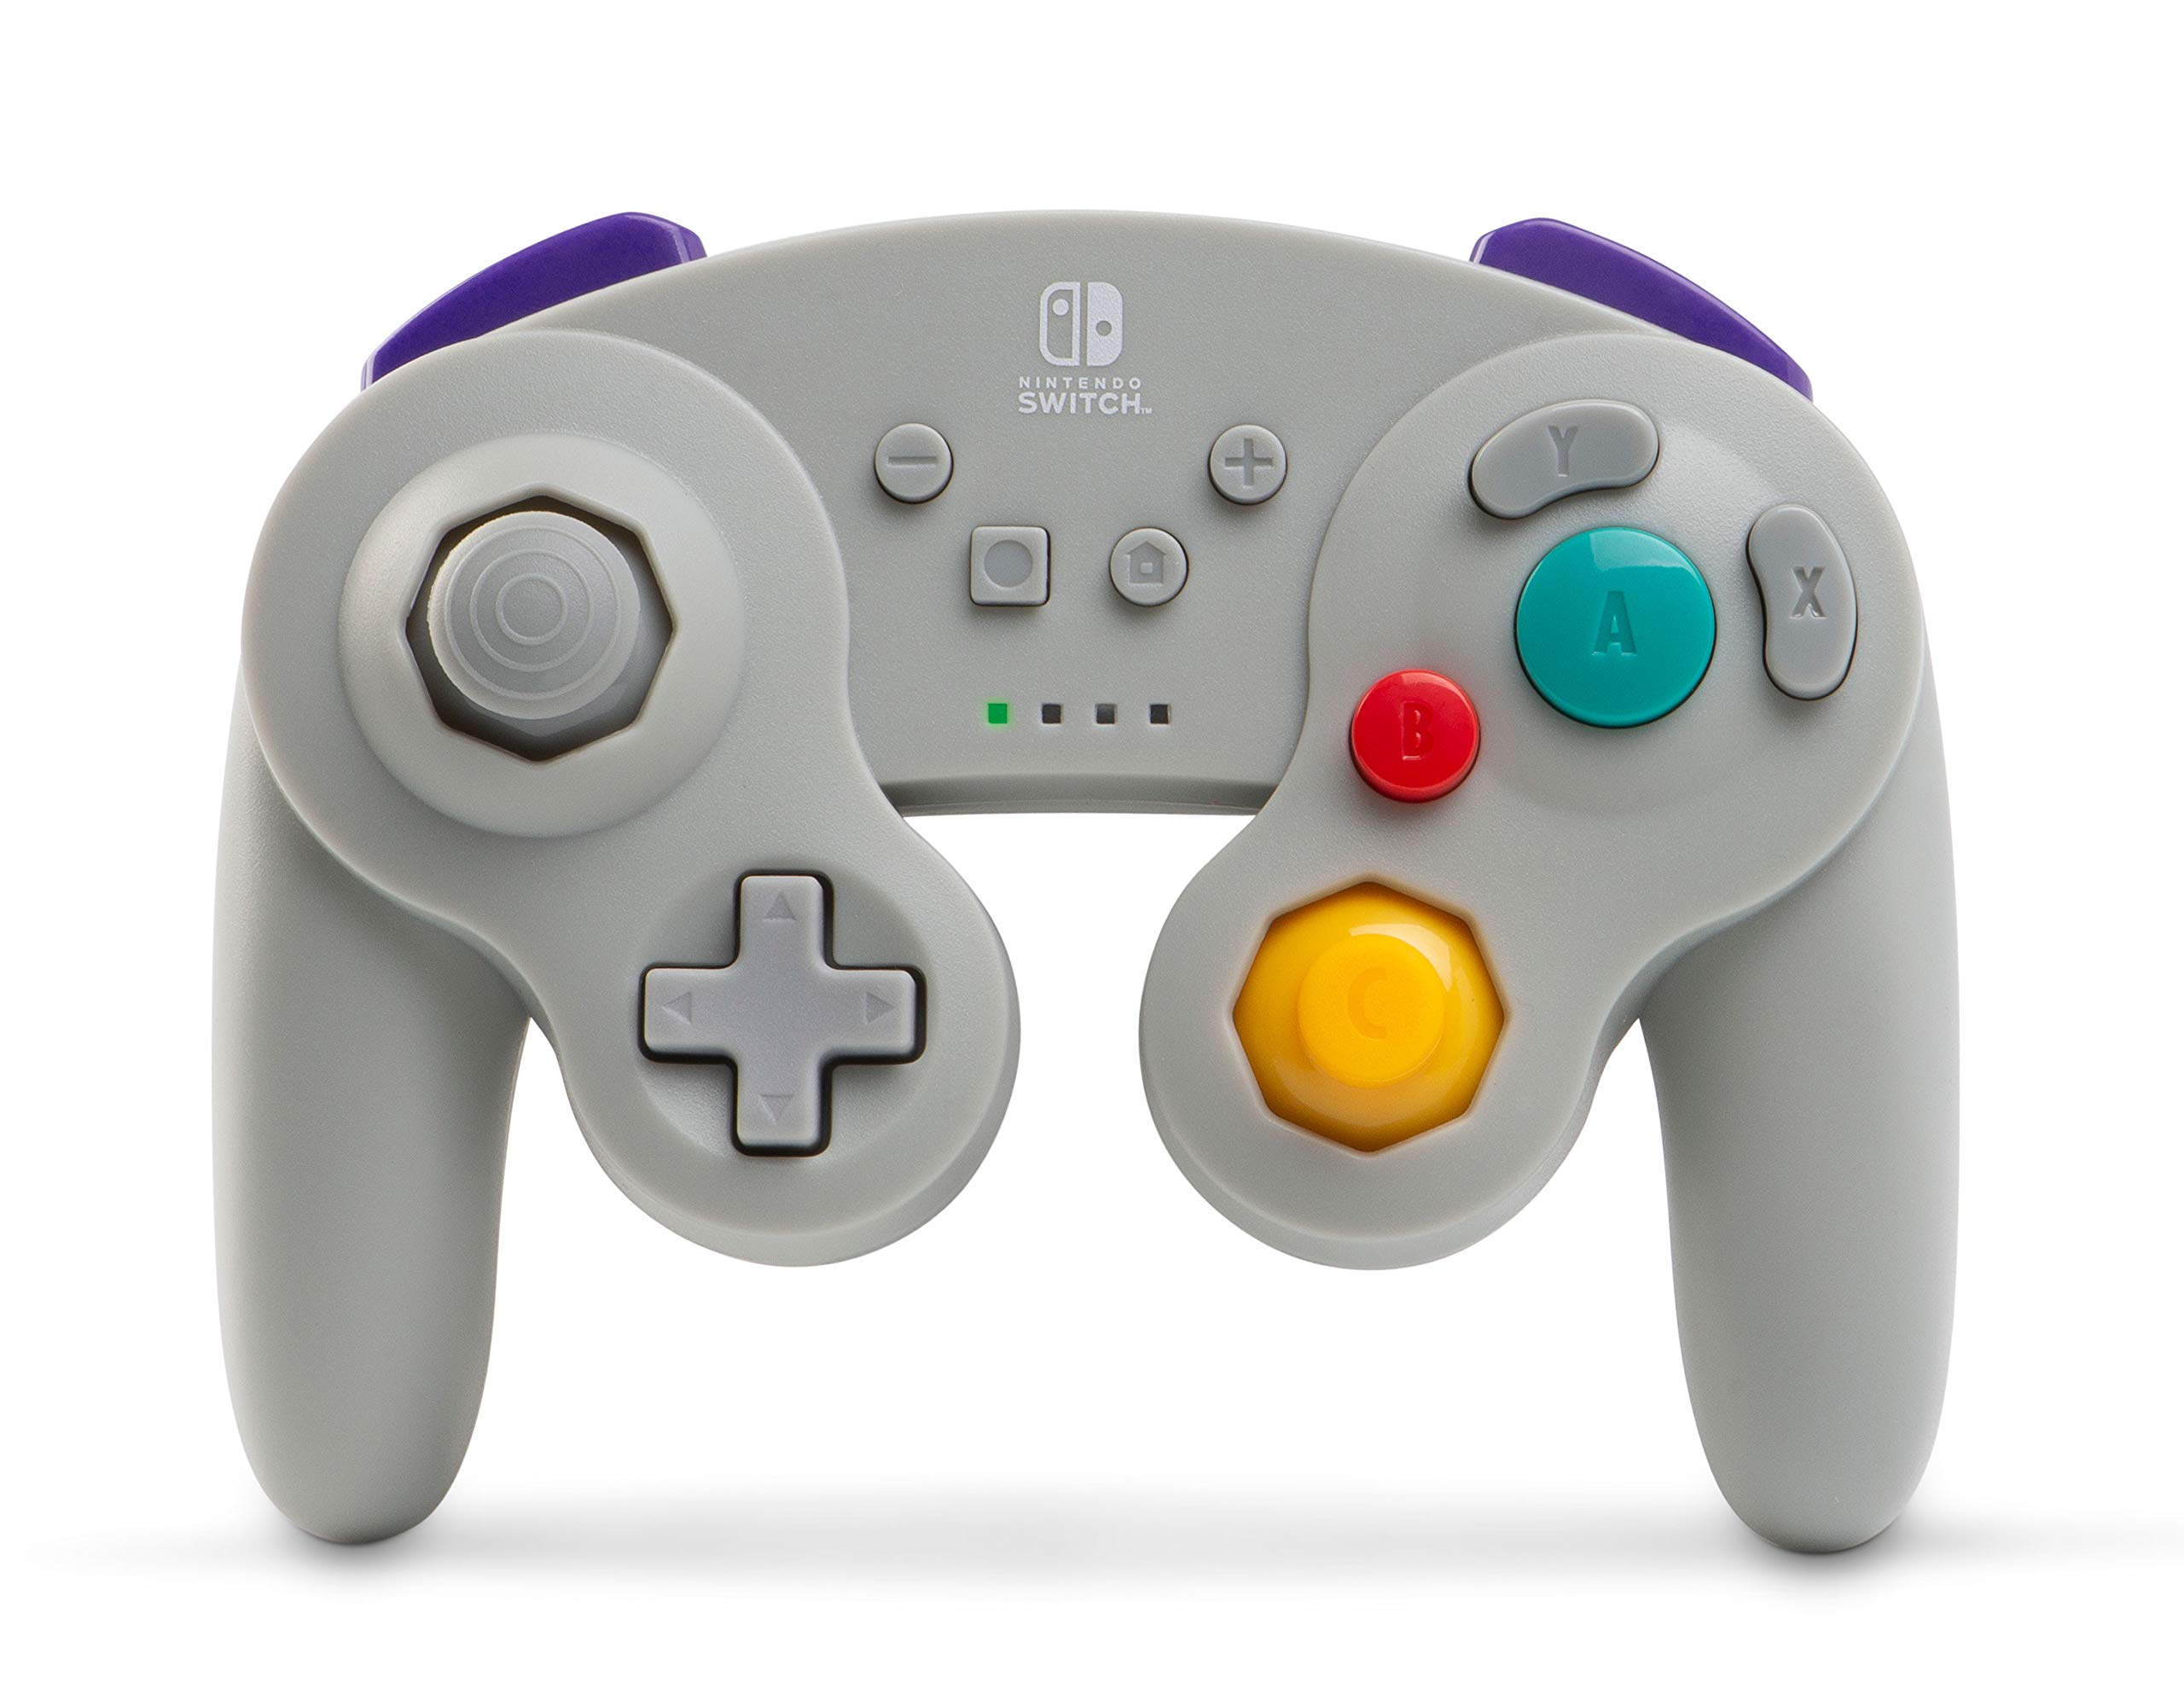 PowerA Wireless GameCube Style Controller for Nintendo Switch - Grey